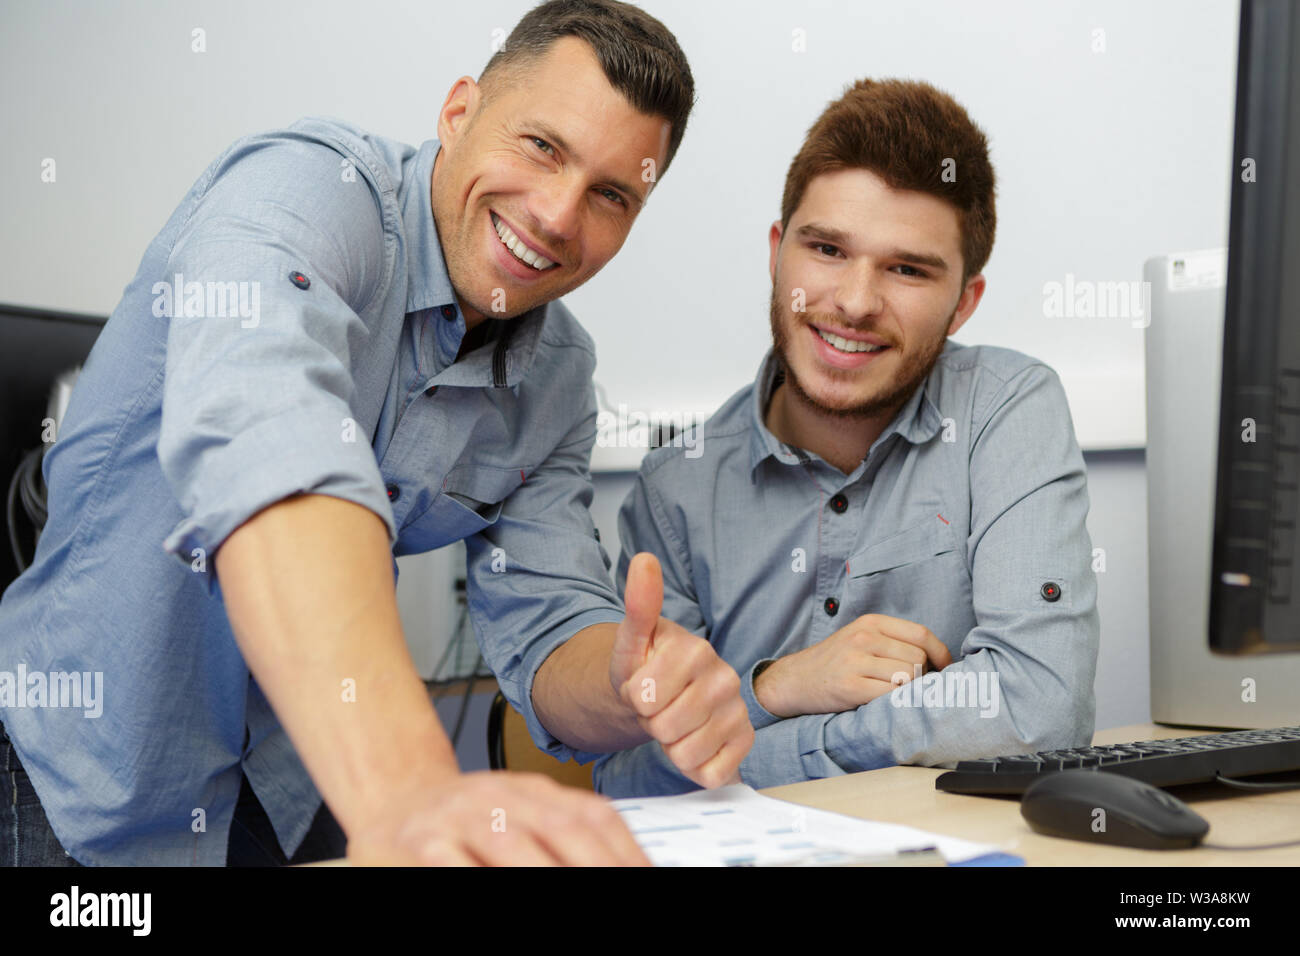 portrait of two happy professional in workshop - Stock Image